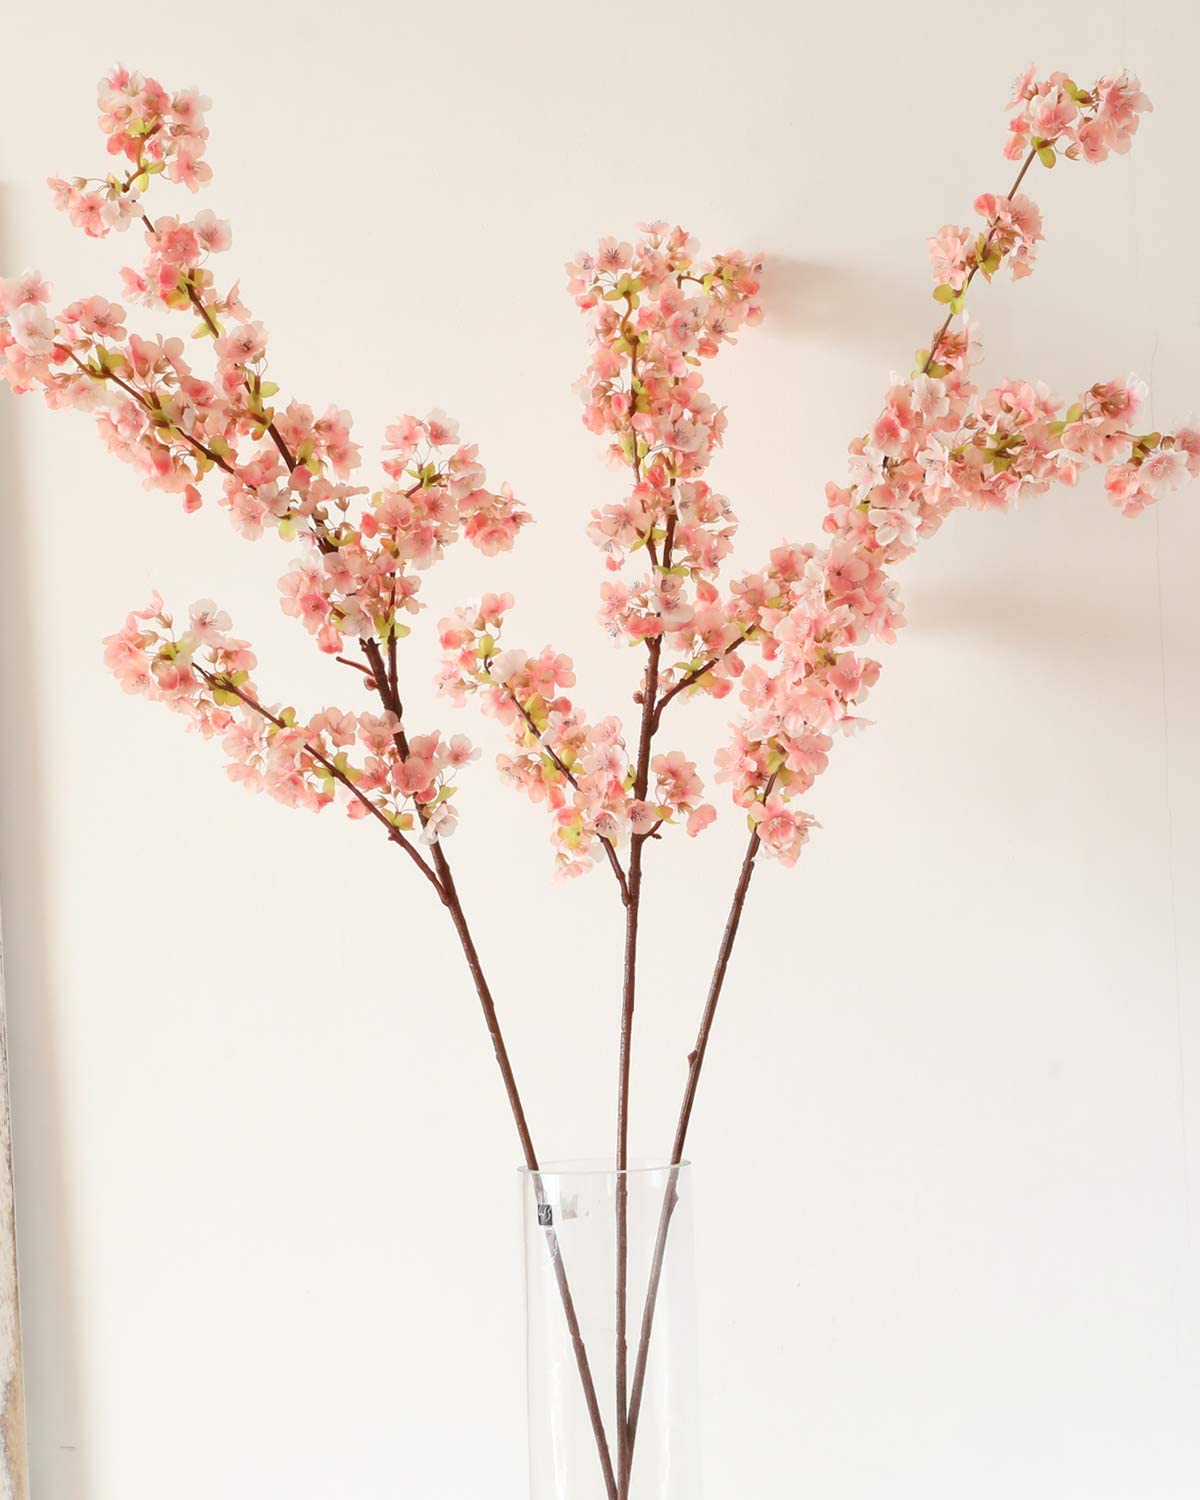 WenXin Artificial Cherry Blossom Flowers Silk,3pcs Peach Branches Tall Fake Flower Arrangements for Home Wedding Decoration 39 Inch (3pcs, Pink)